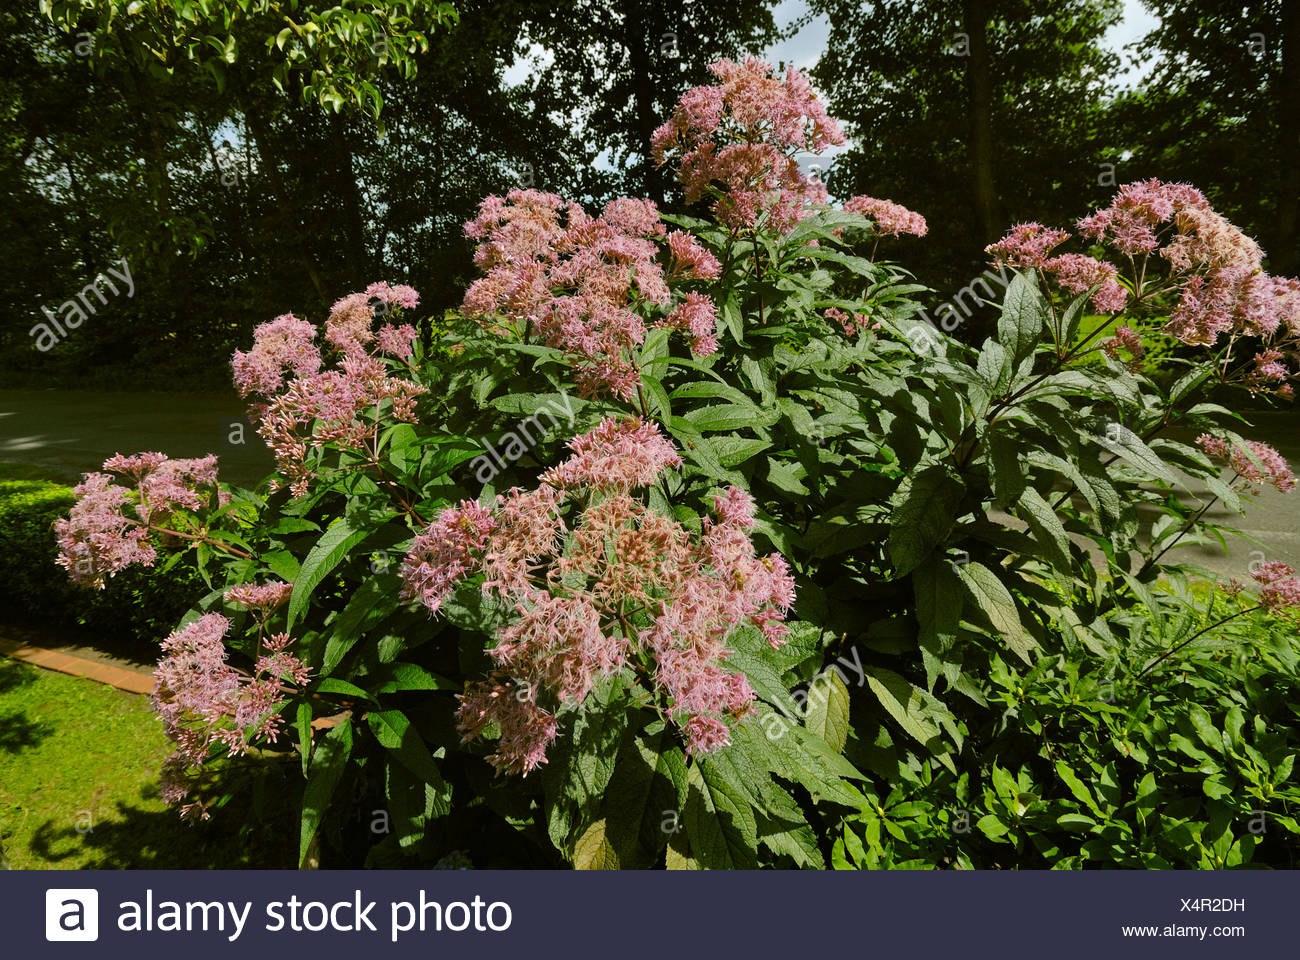 joe-pye weed, trumpet weed, gravelroot, sweet joe-pye-weed (Eupatorium purpureum), flowering bush in the garden, Germany, NRW, Sennestadt - Stock Image